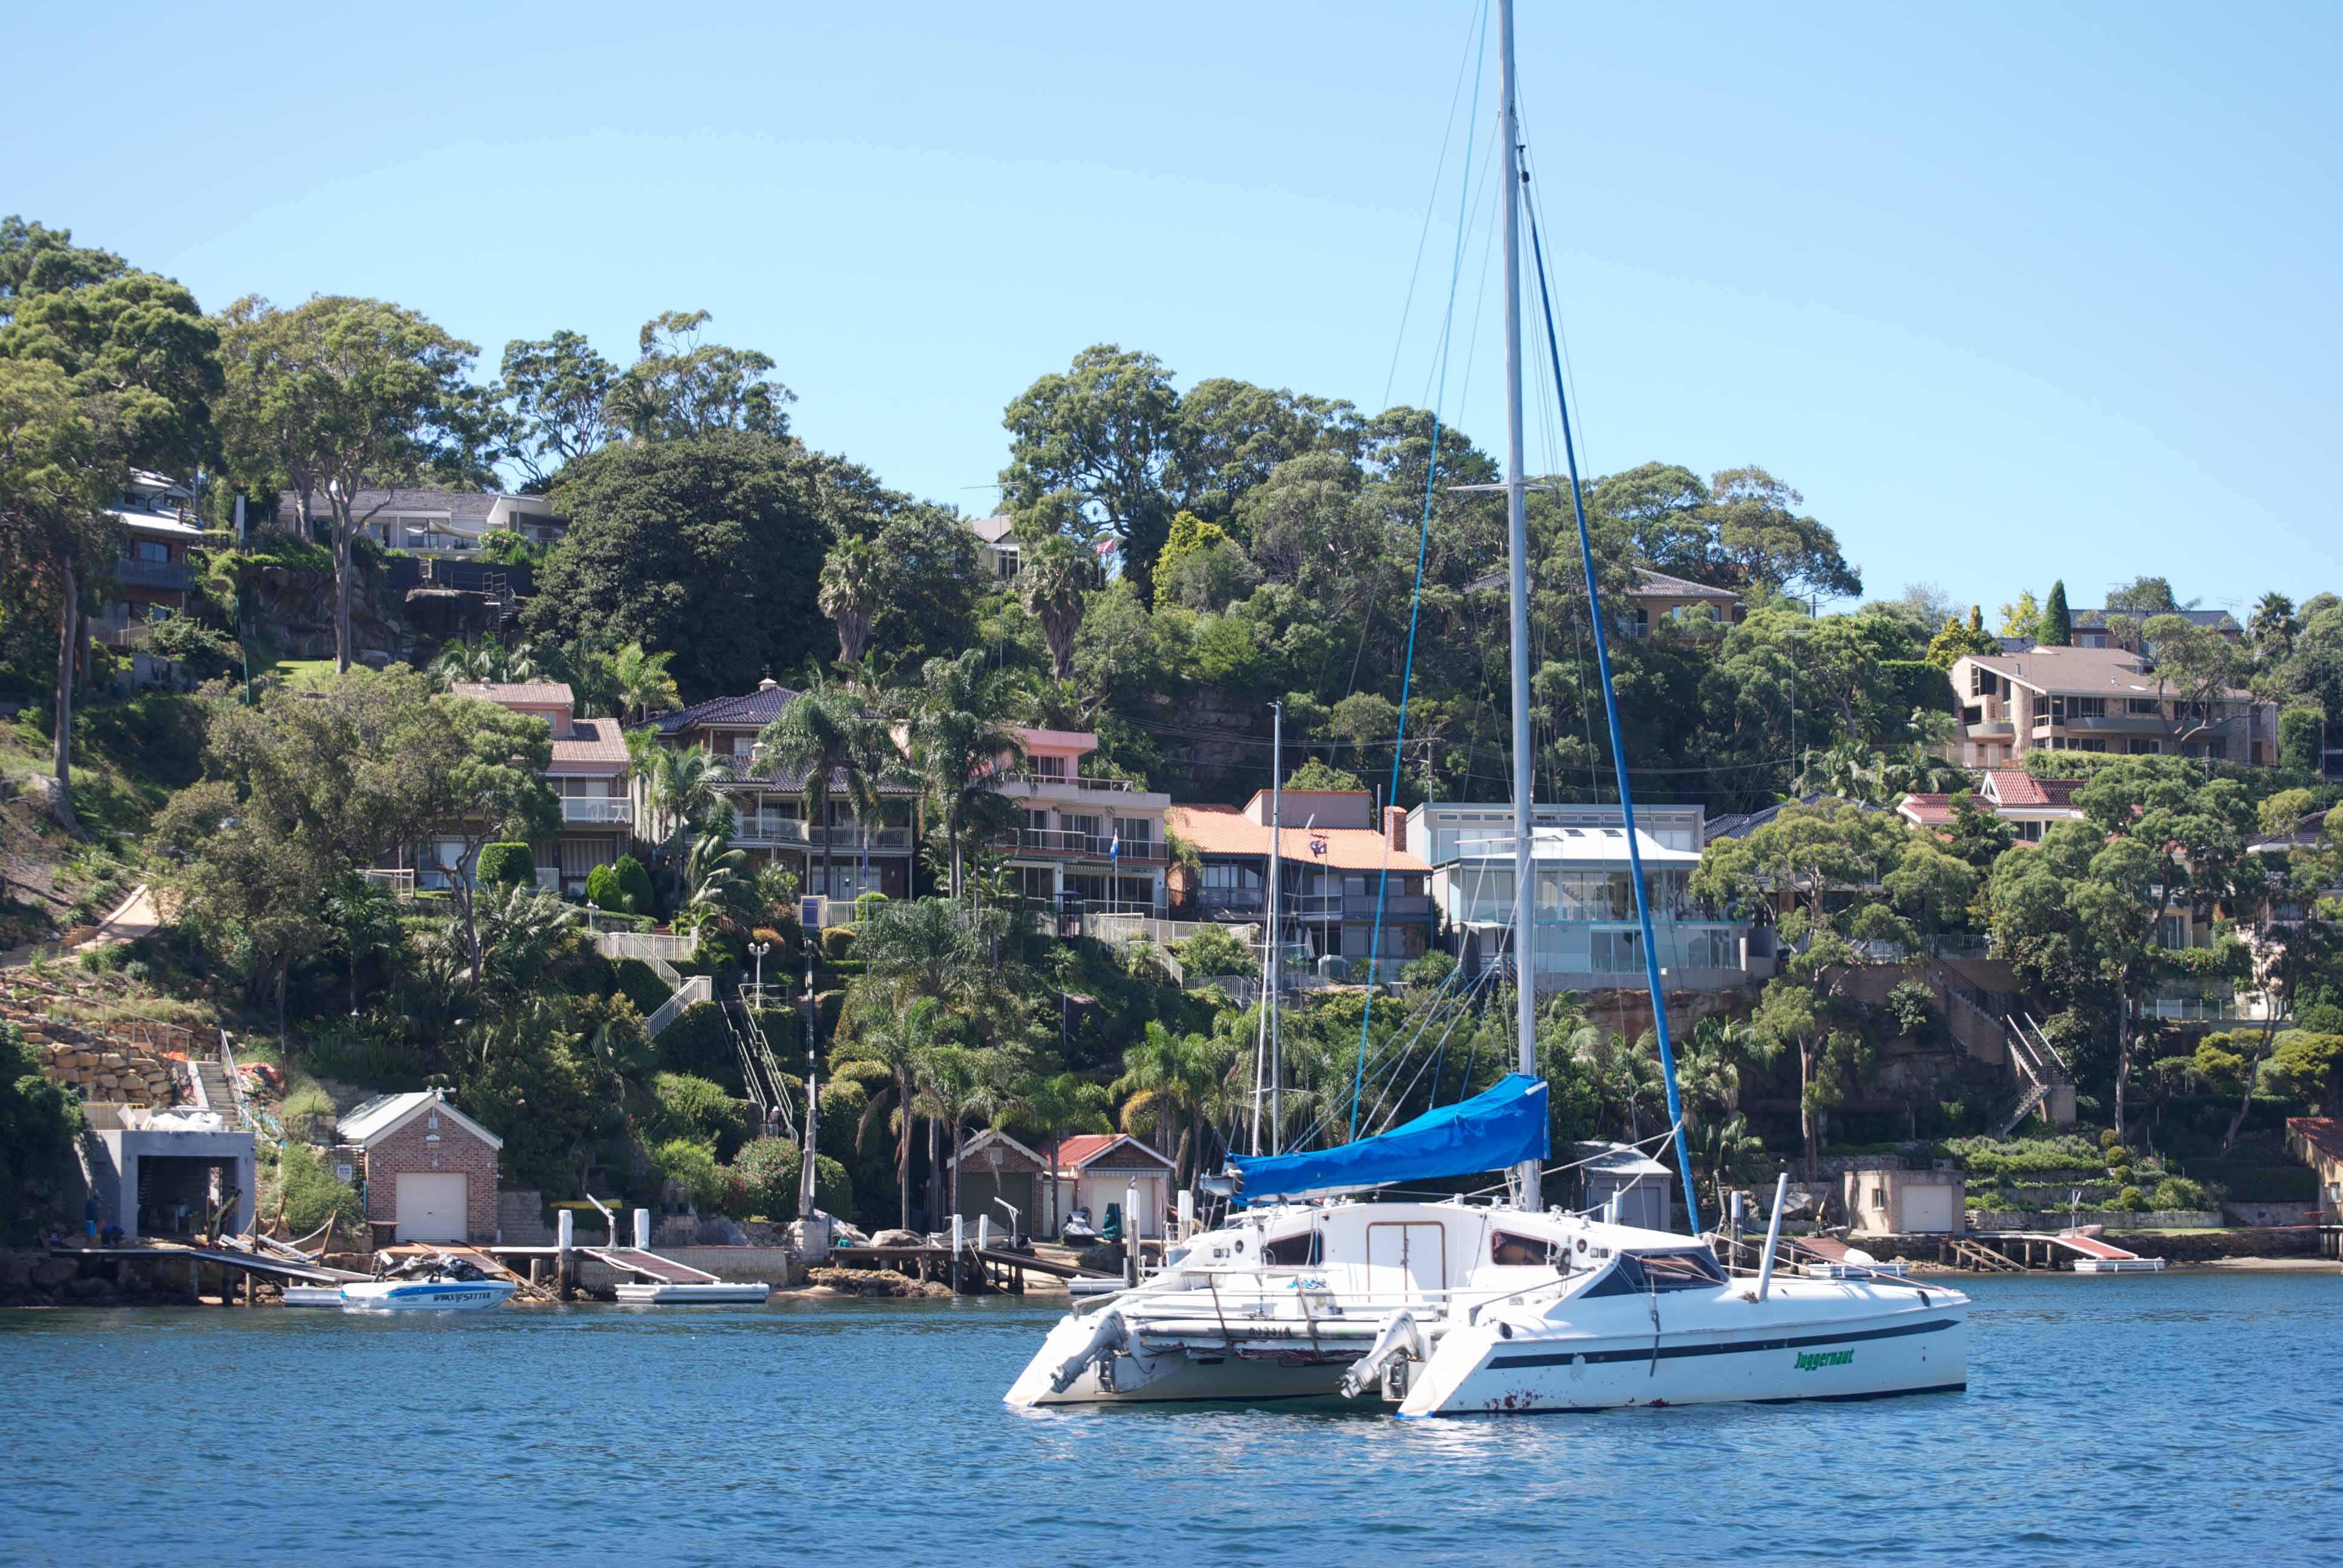 Mytinerary private tour - Port Hacking